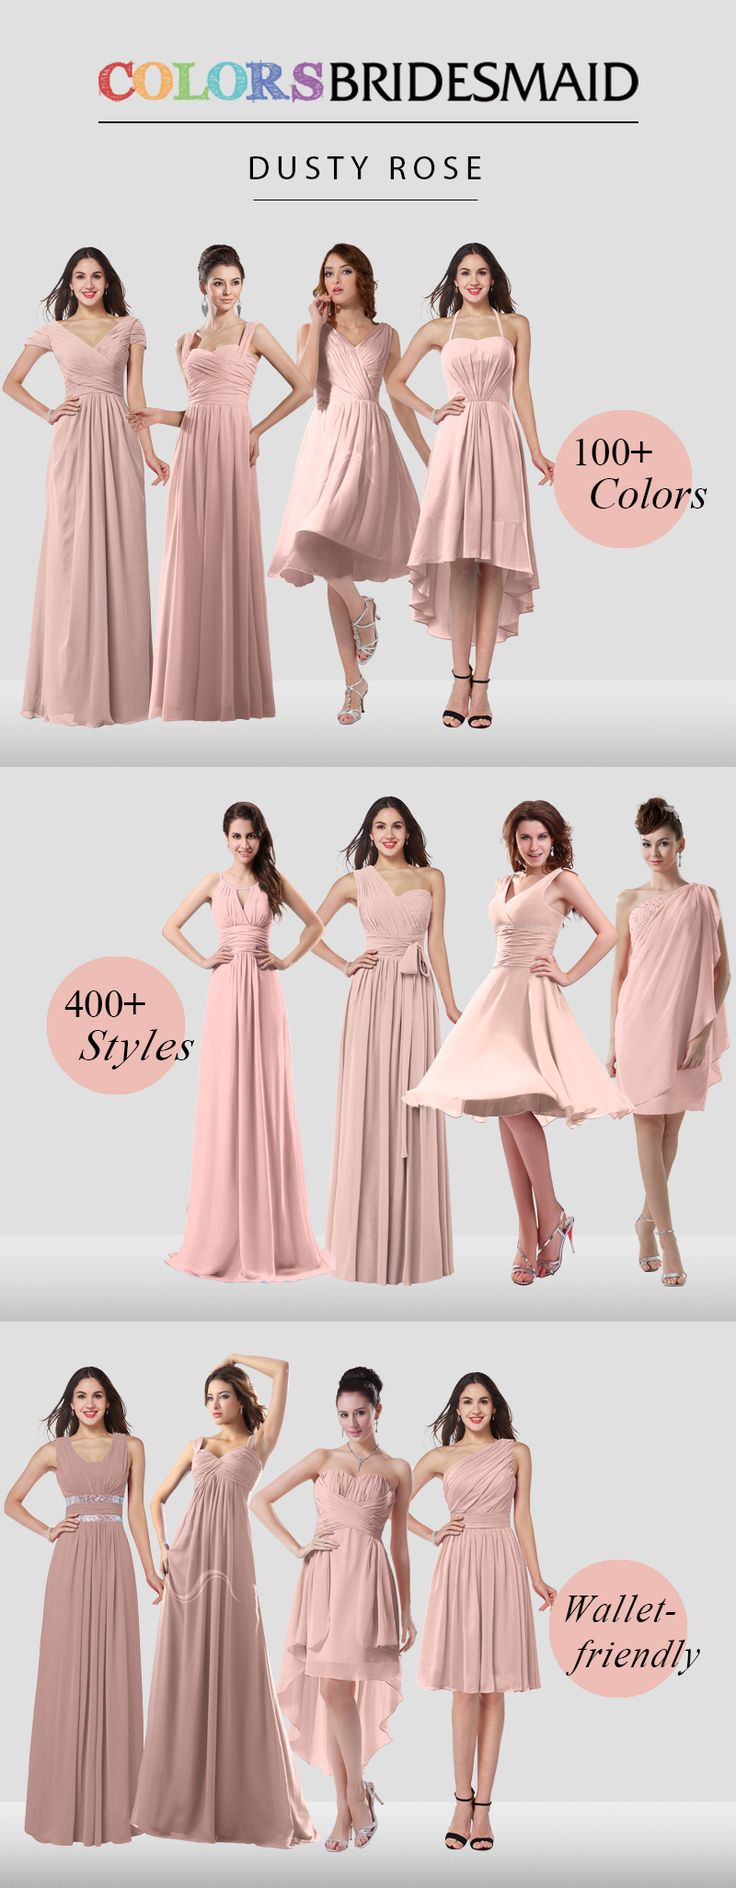 Pink bridesmaid dresses in 500+ styles and $69 up will always satisfy you!